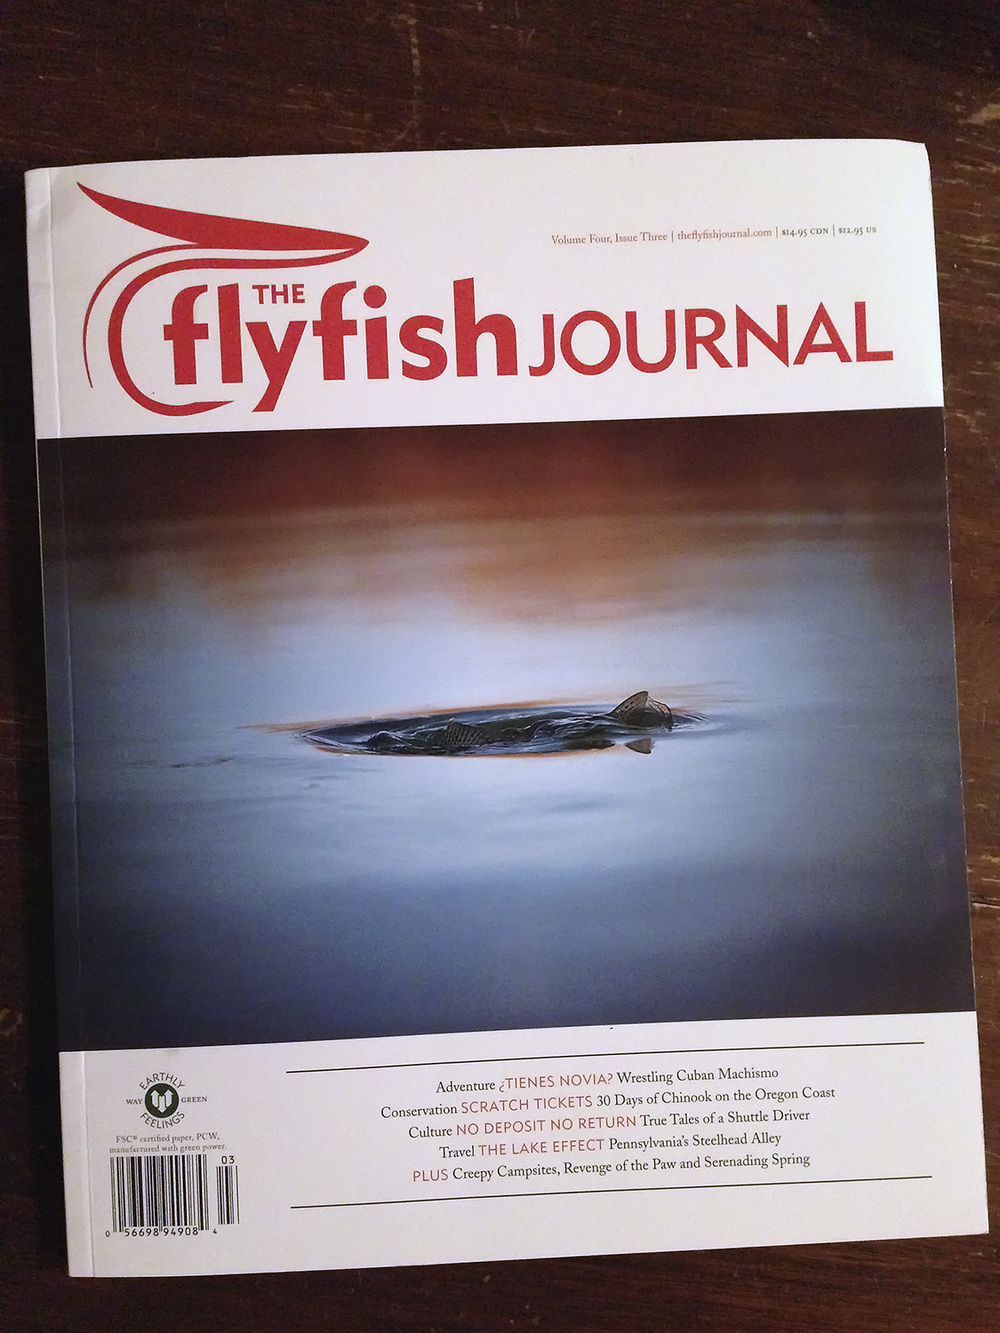 The FlyFish Journal Issue 4.3. Cover